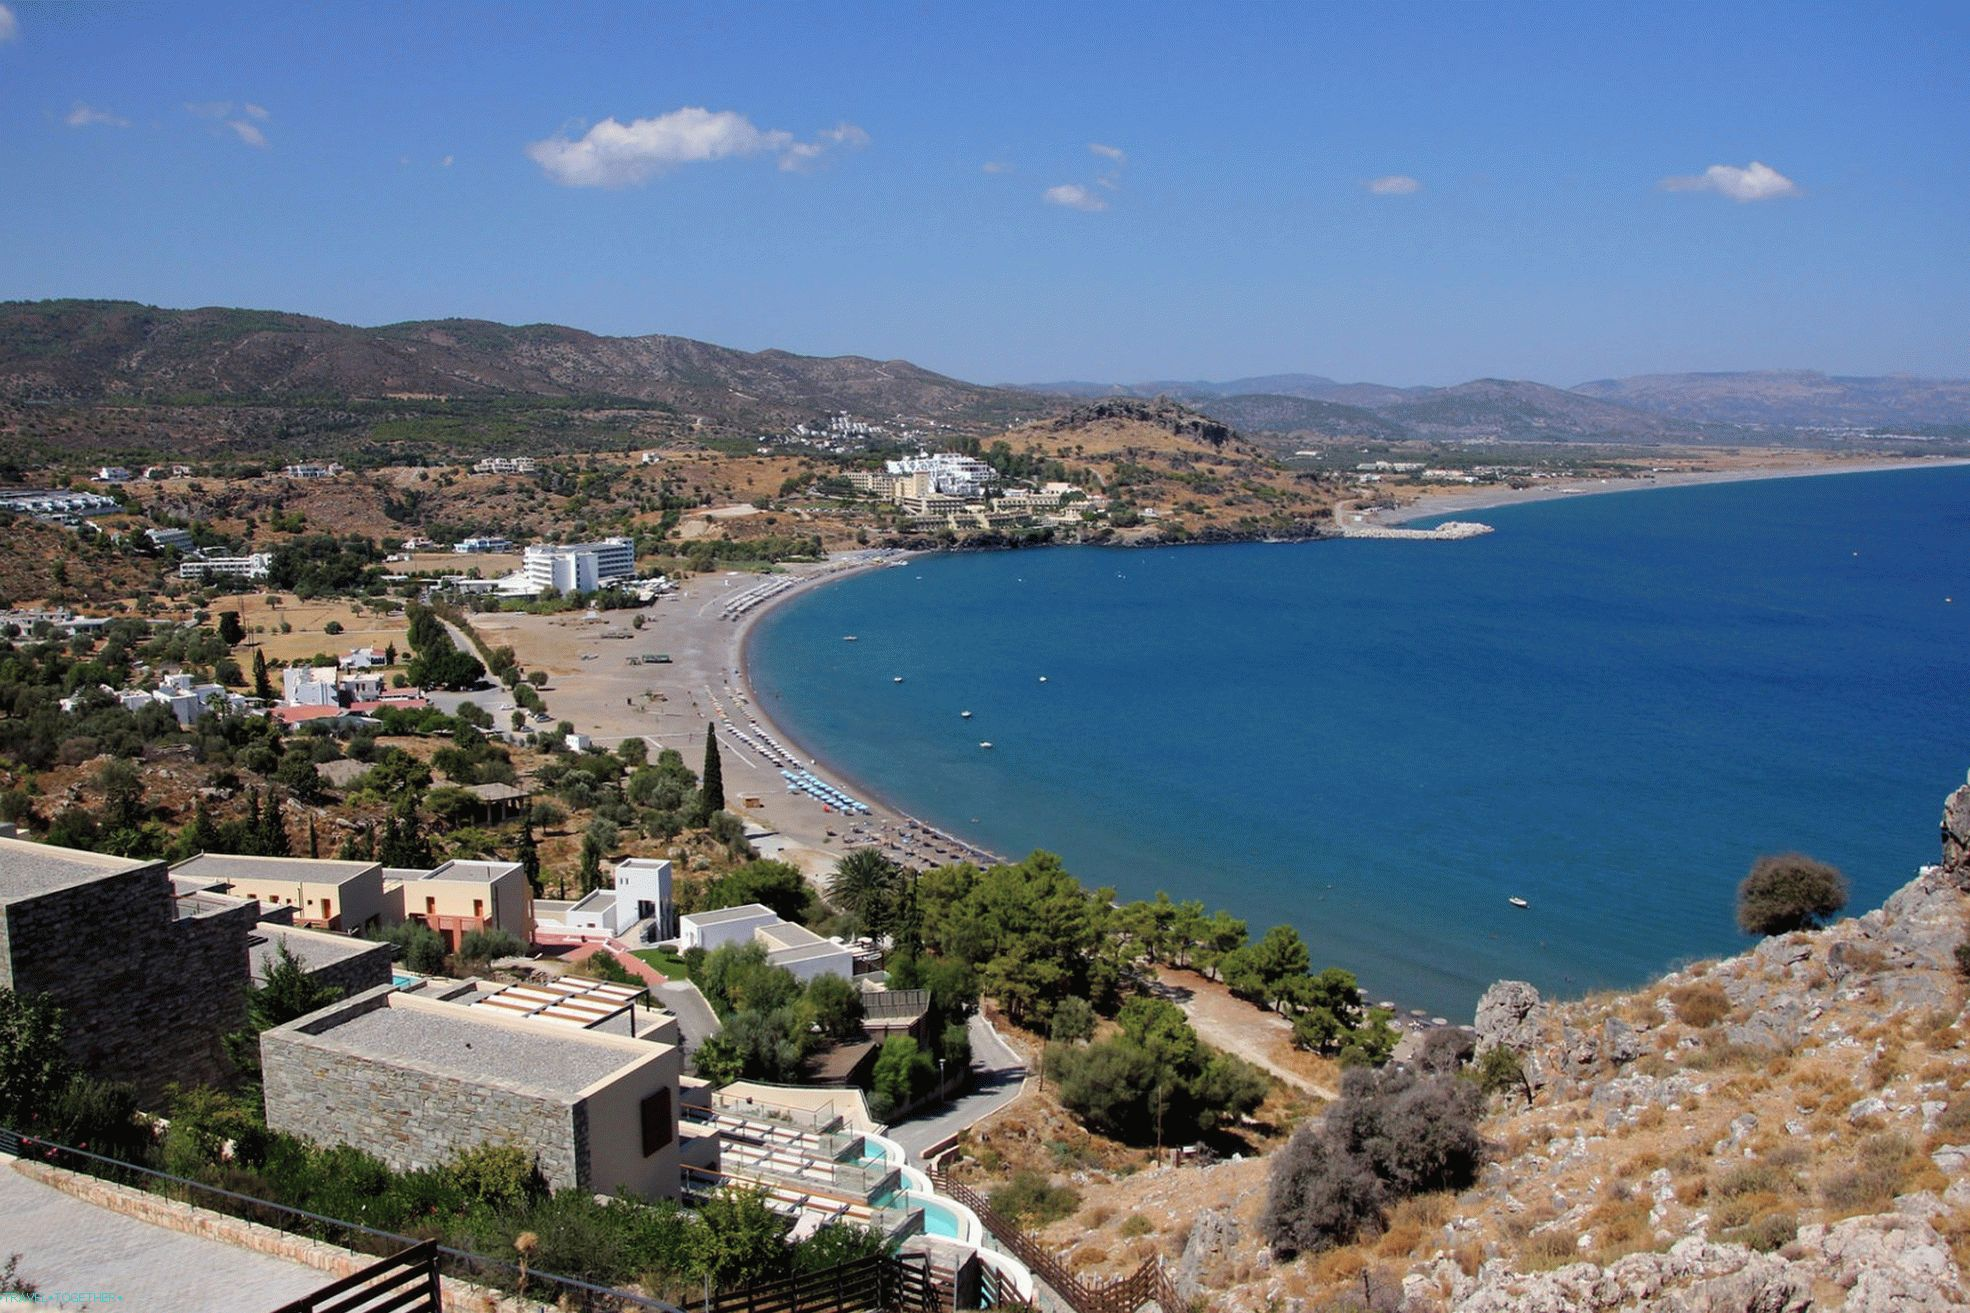 Faliraki on Rhodes: from a fishing village to a tourism center